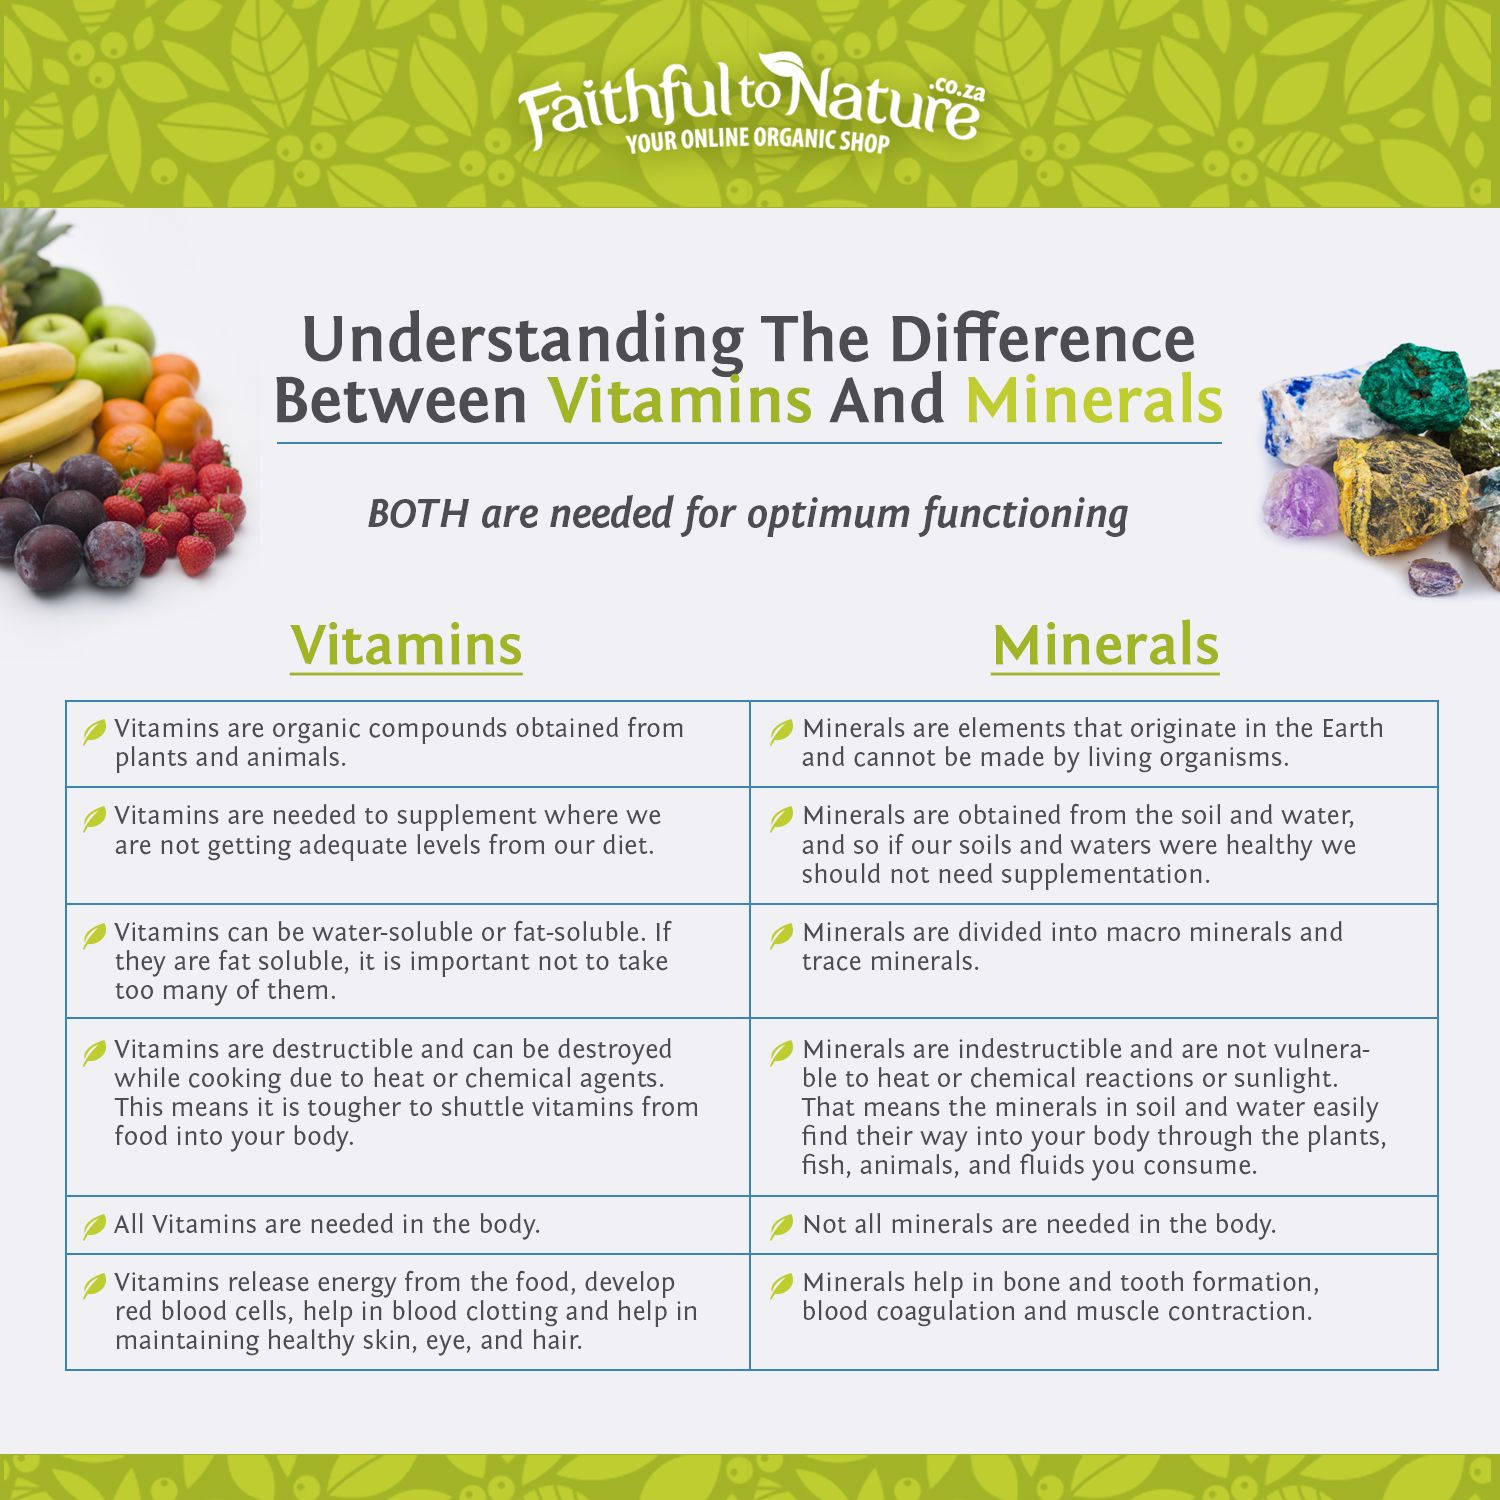 The Difference Between Vitamins And Minerals